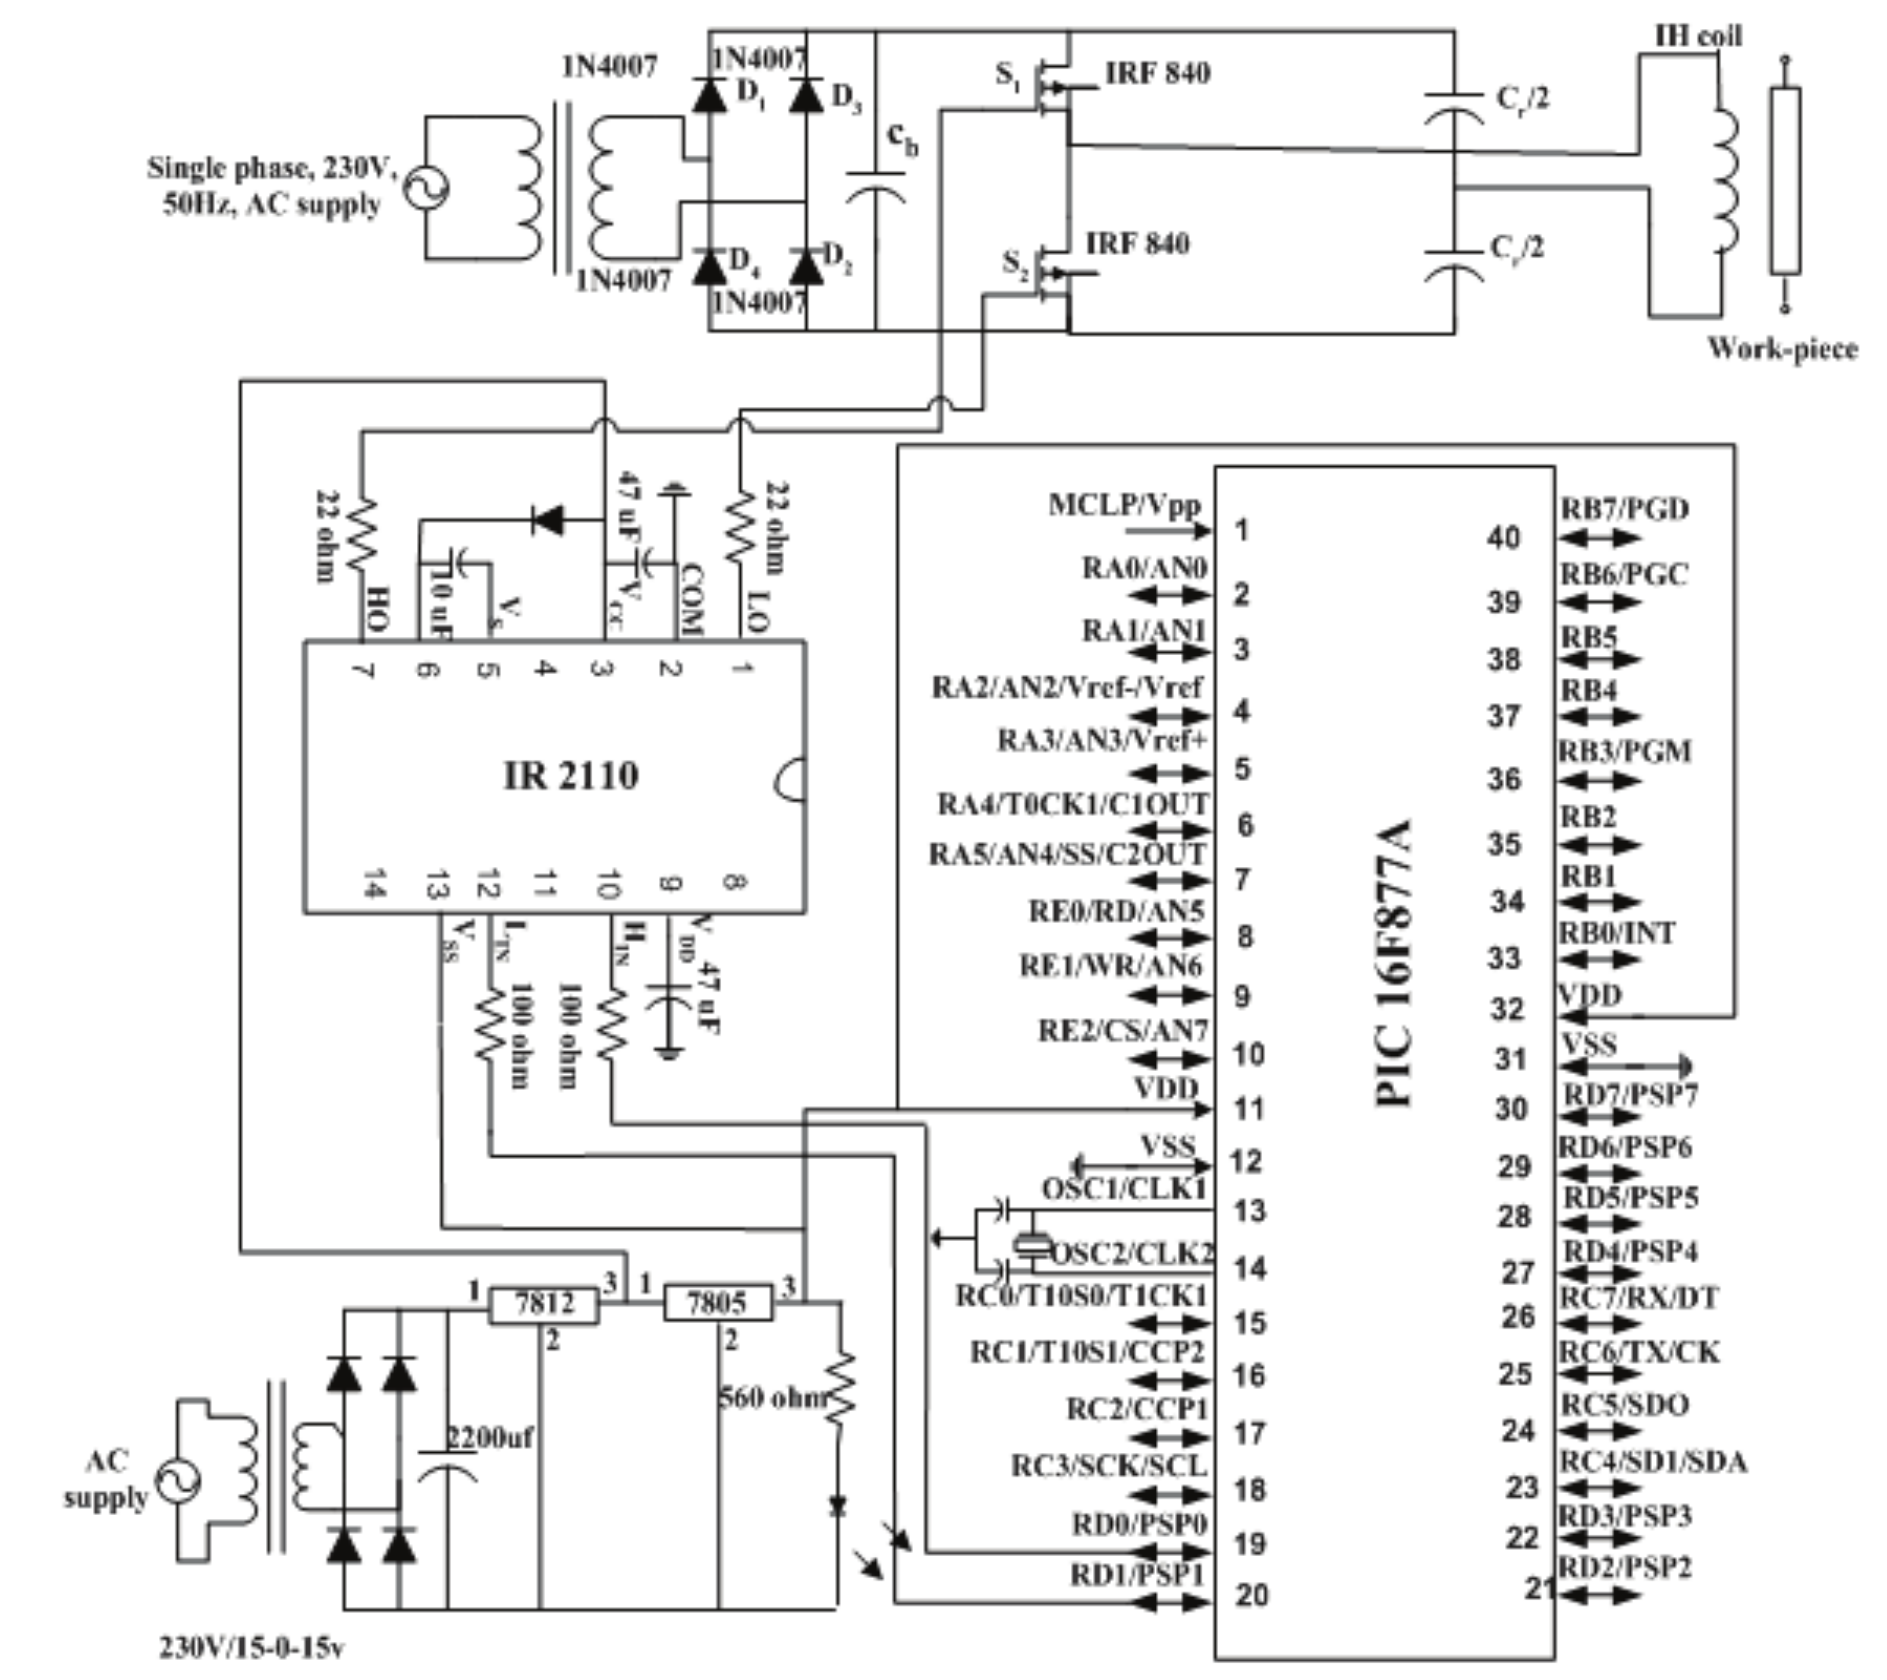 Pulse Mask Controlled Hfac Resonant Converter For High Efficiency Induction Cooker Schematic Circuit Diagram The Hardware Implementation Of Conversion